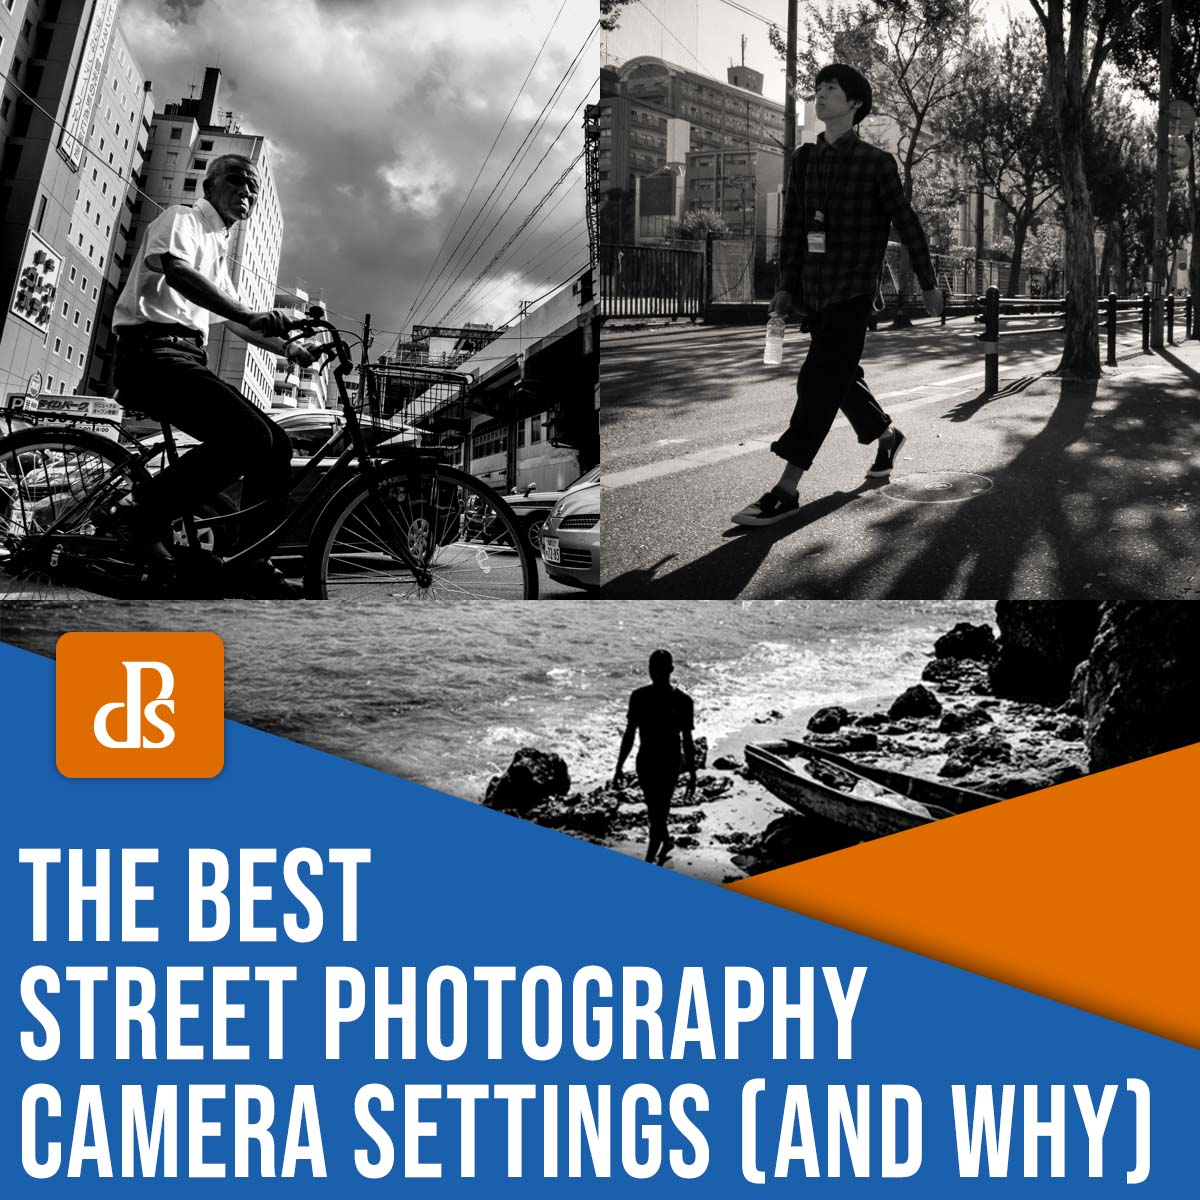 The Best Street Photography Settings (And Why)